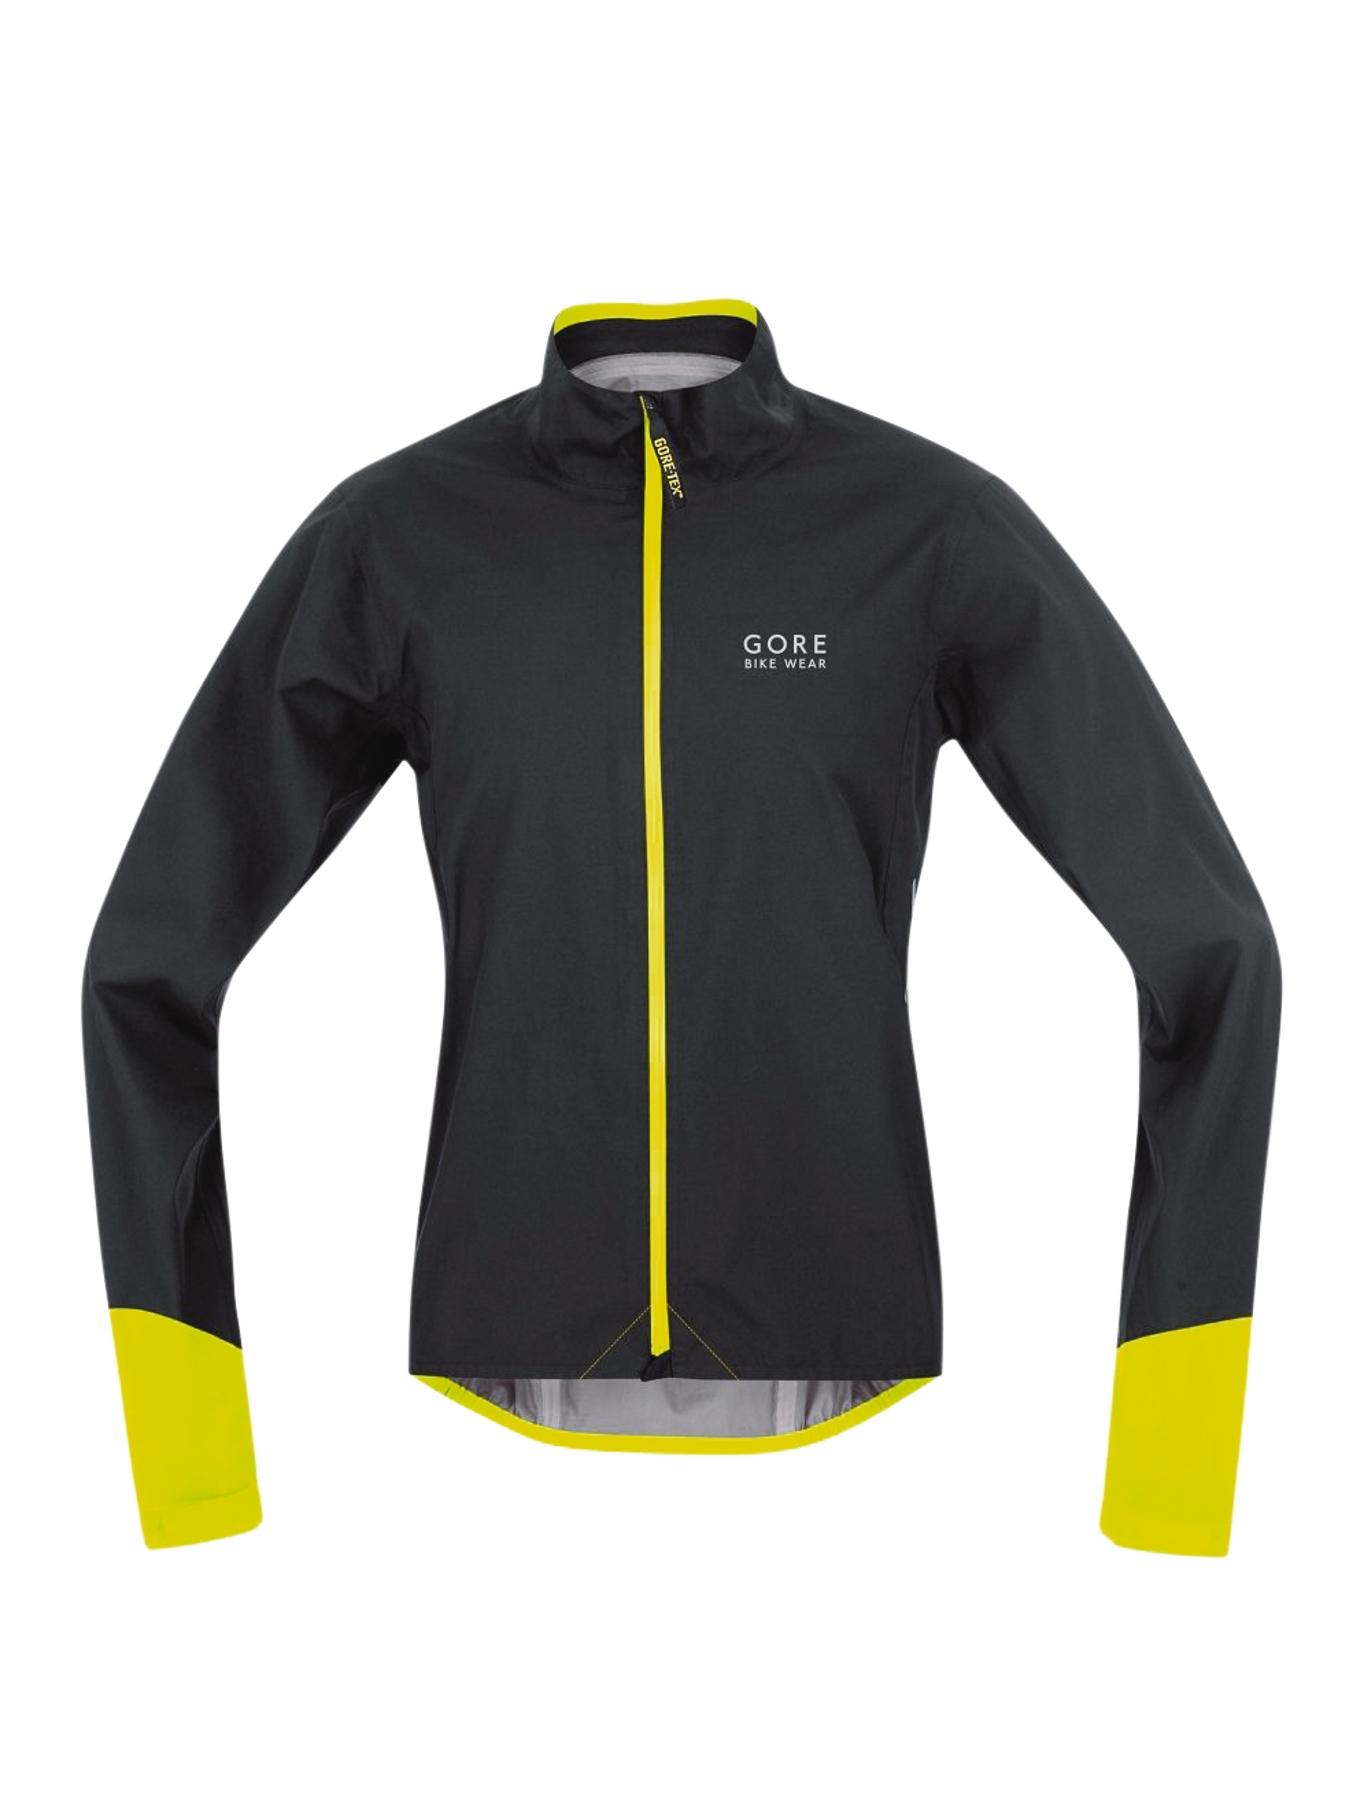 GORE Mens Power Gore-Tex Active Jacket - Black, Black,Blue